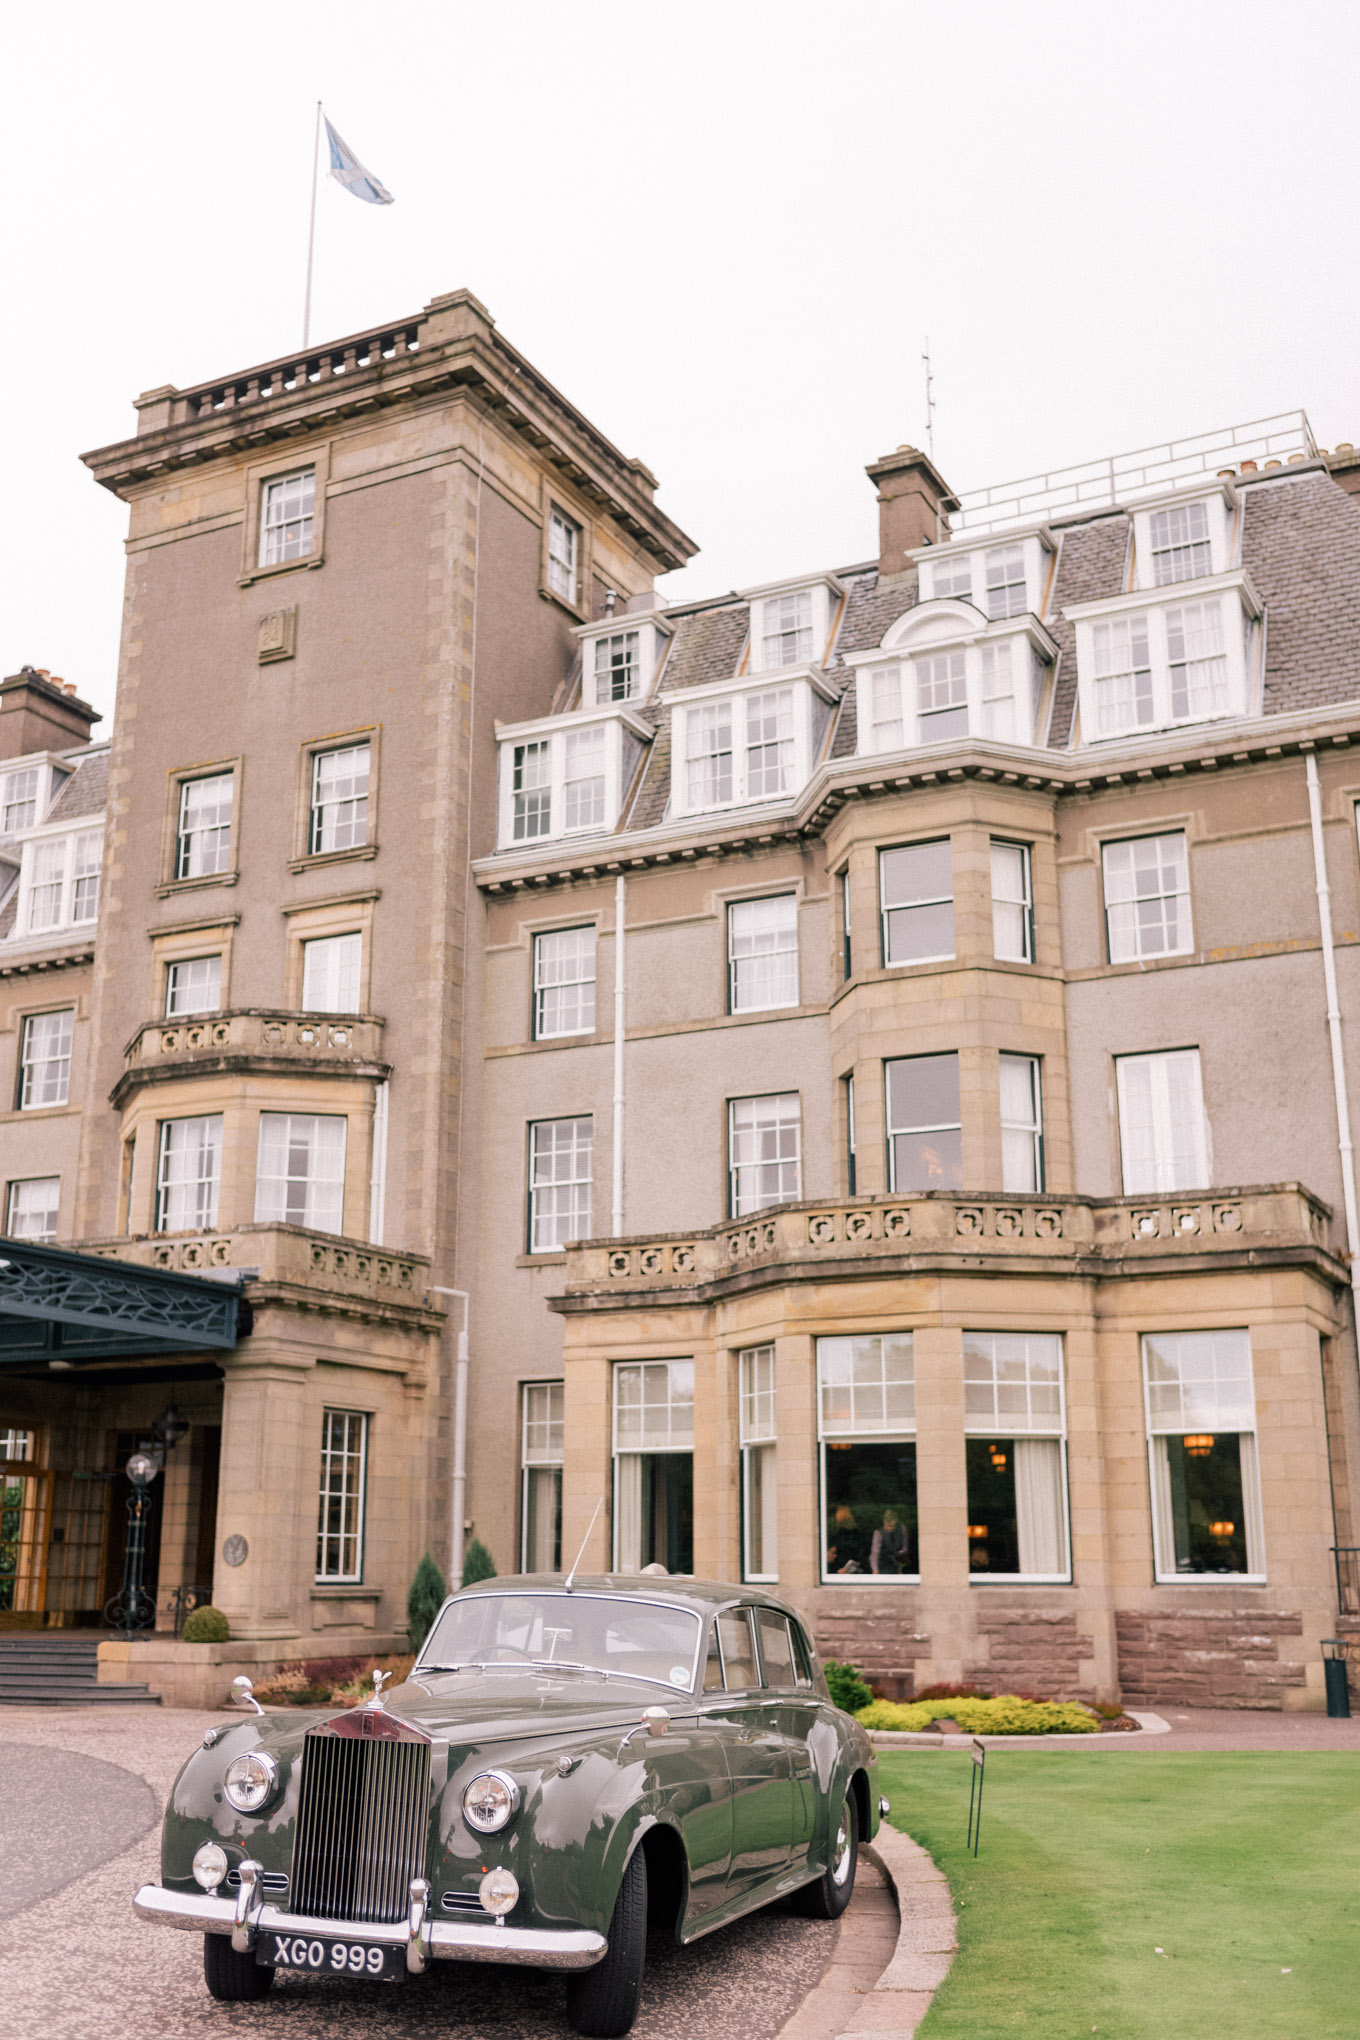 gmg-scotland-fall-trip- gleneagles-1005235